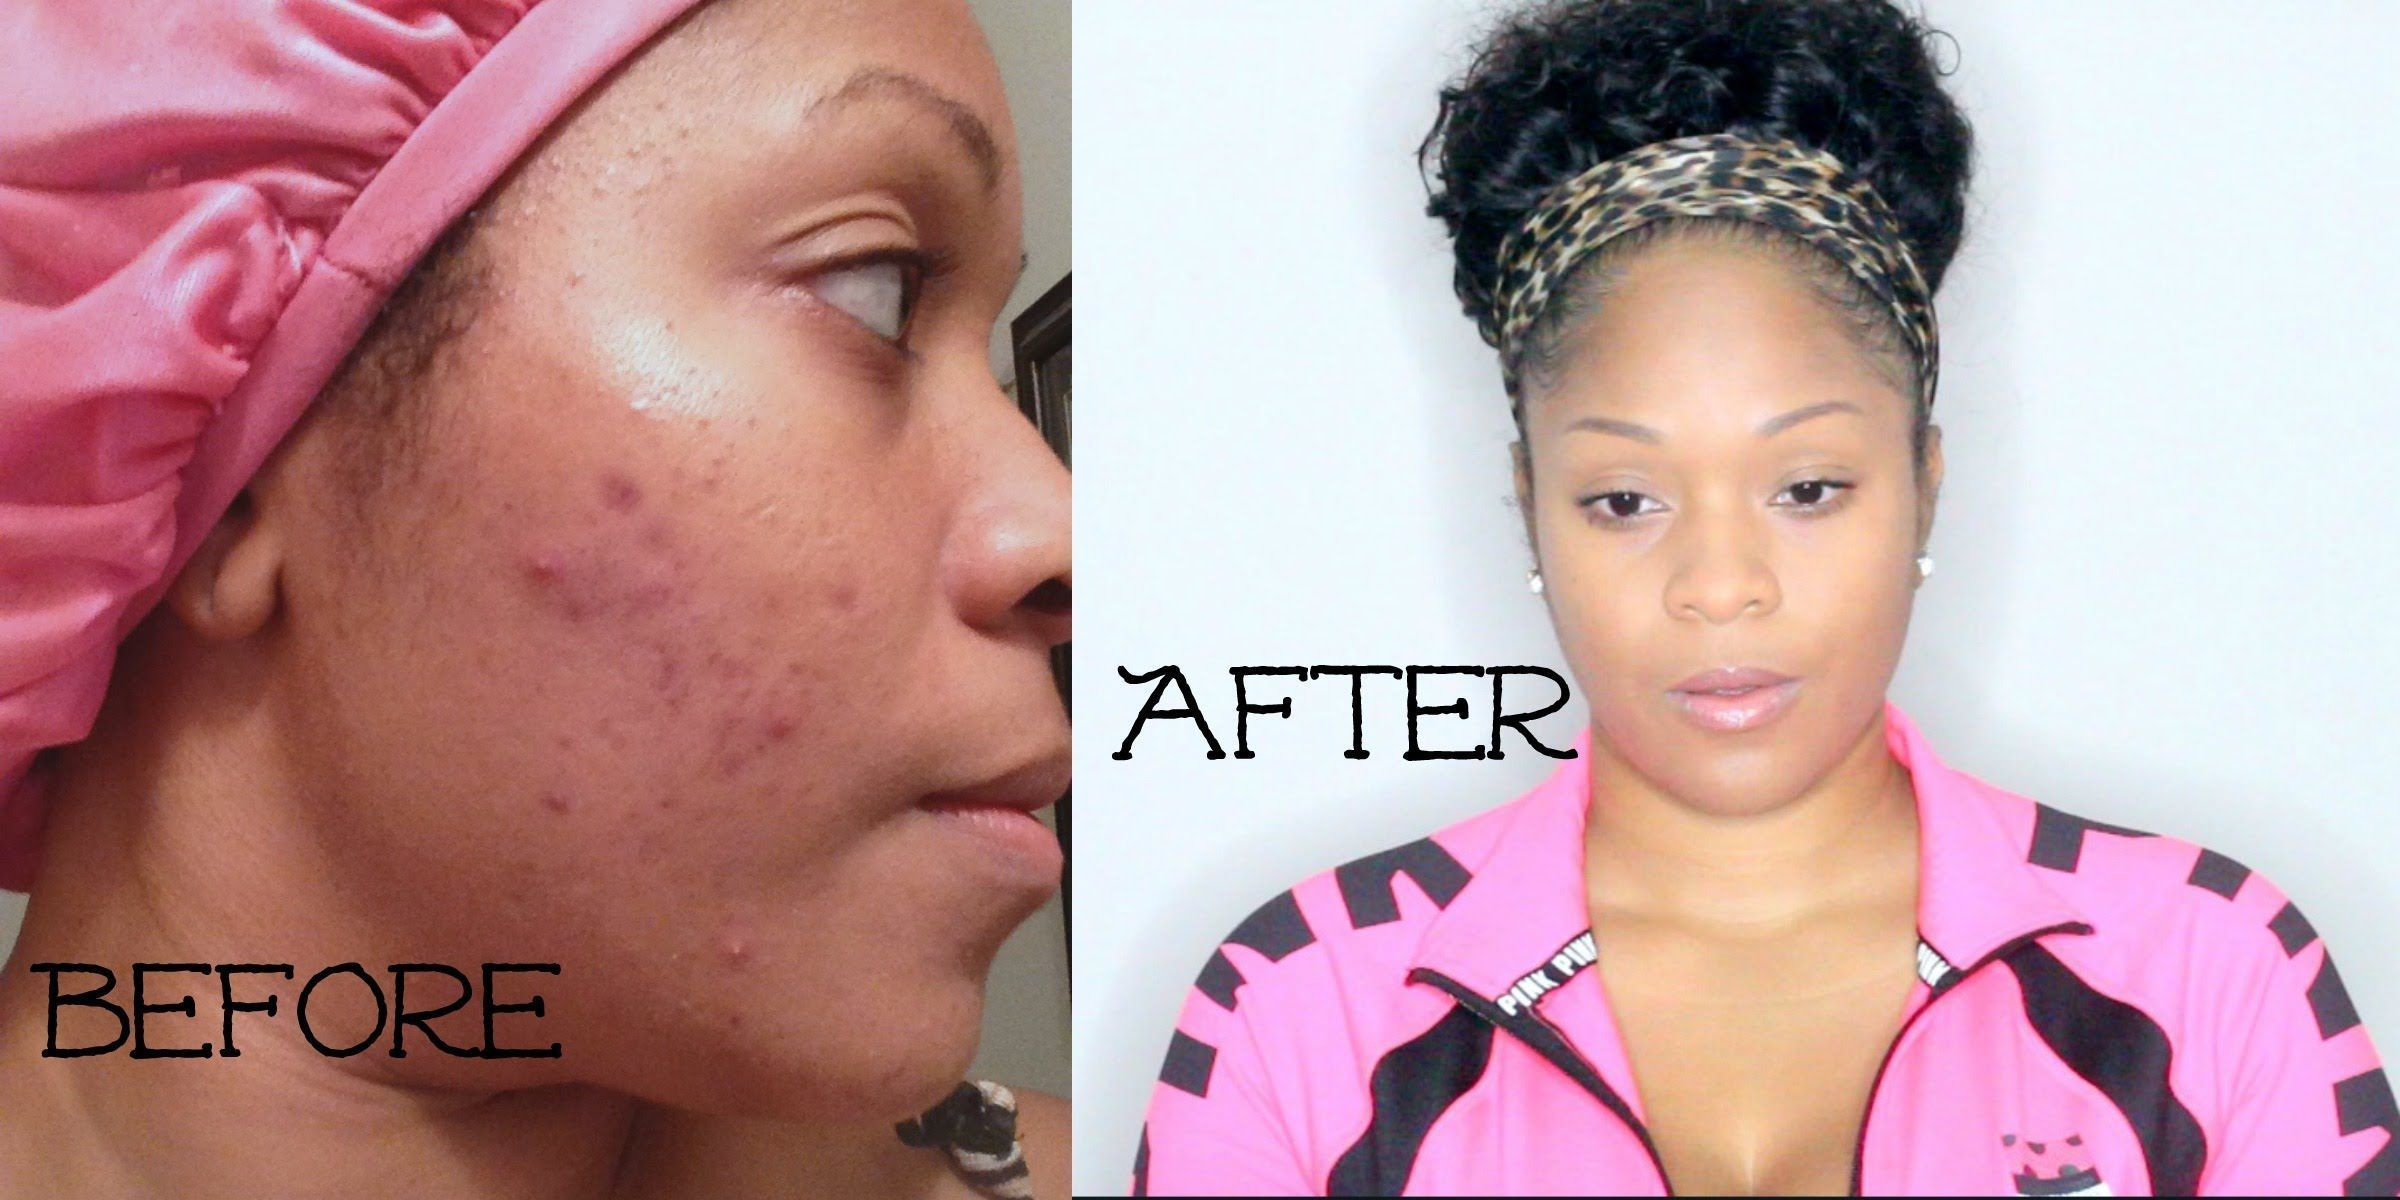 How to stop acne breakout fast get rid of pimples